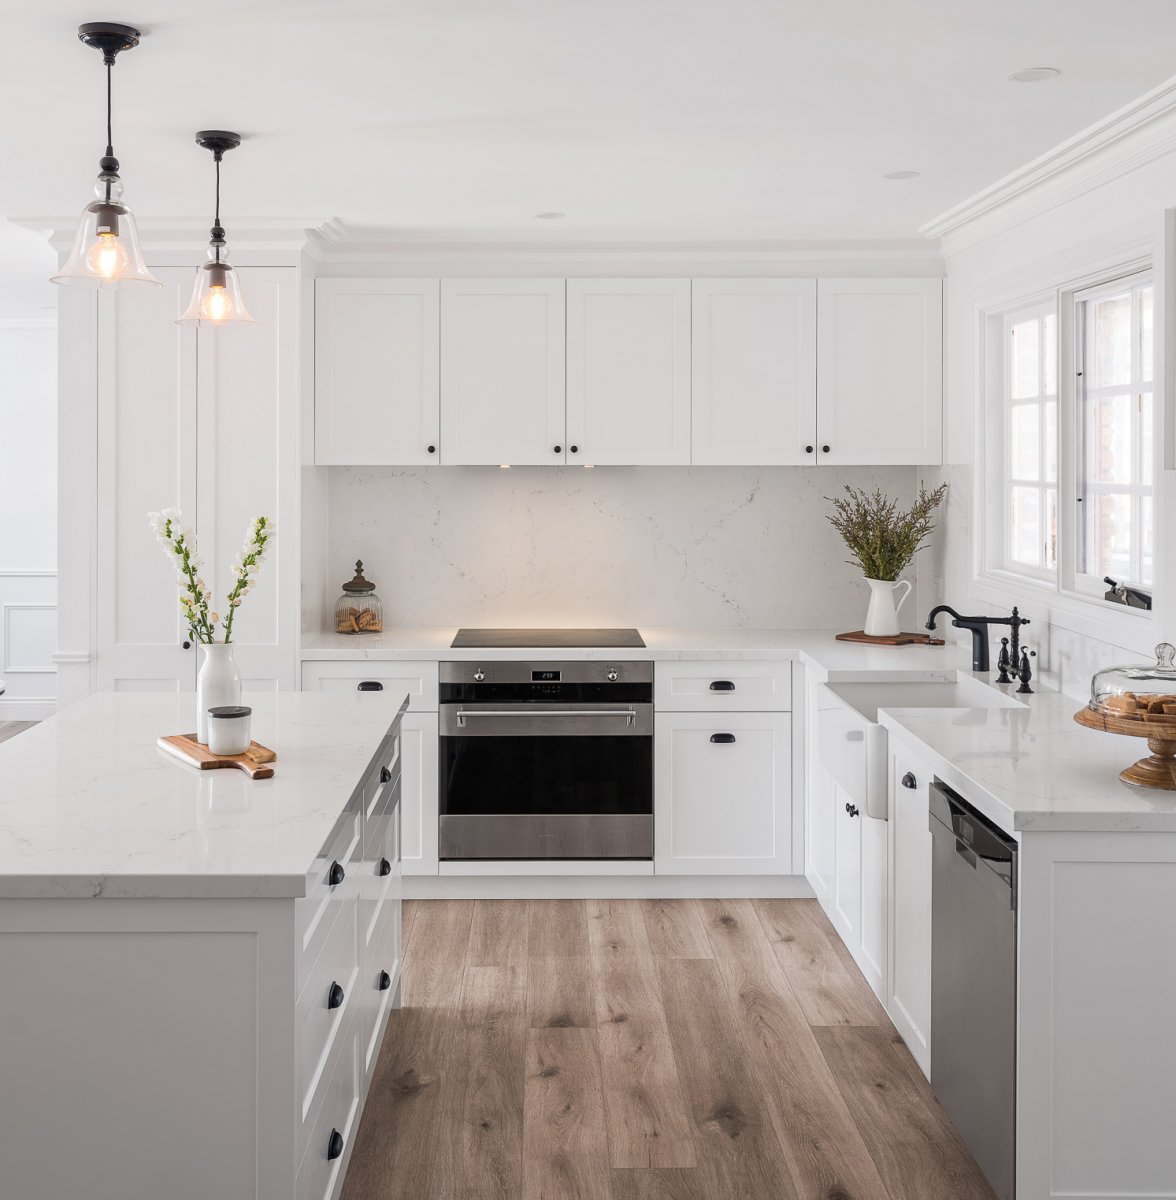 How to best allocate your kitchen renovation budget?